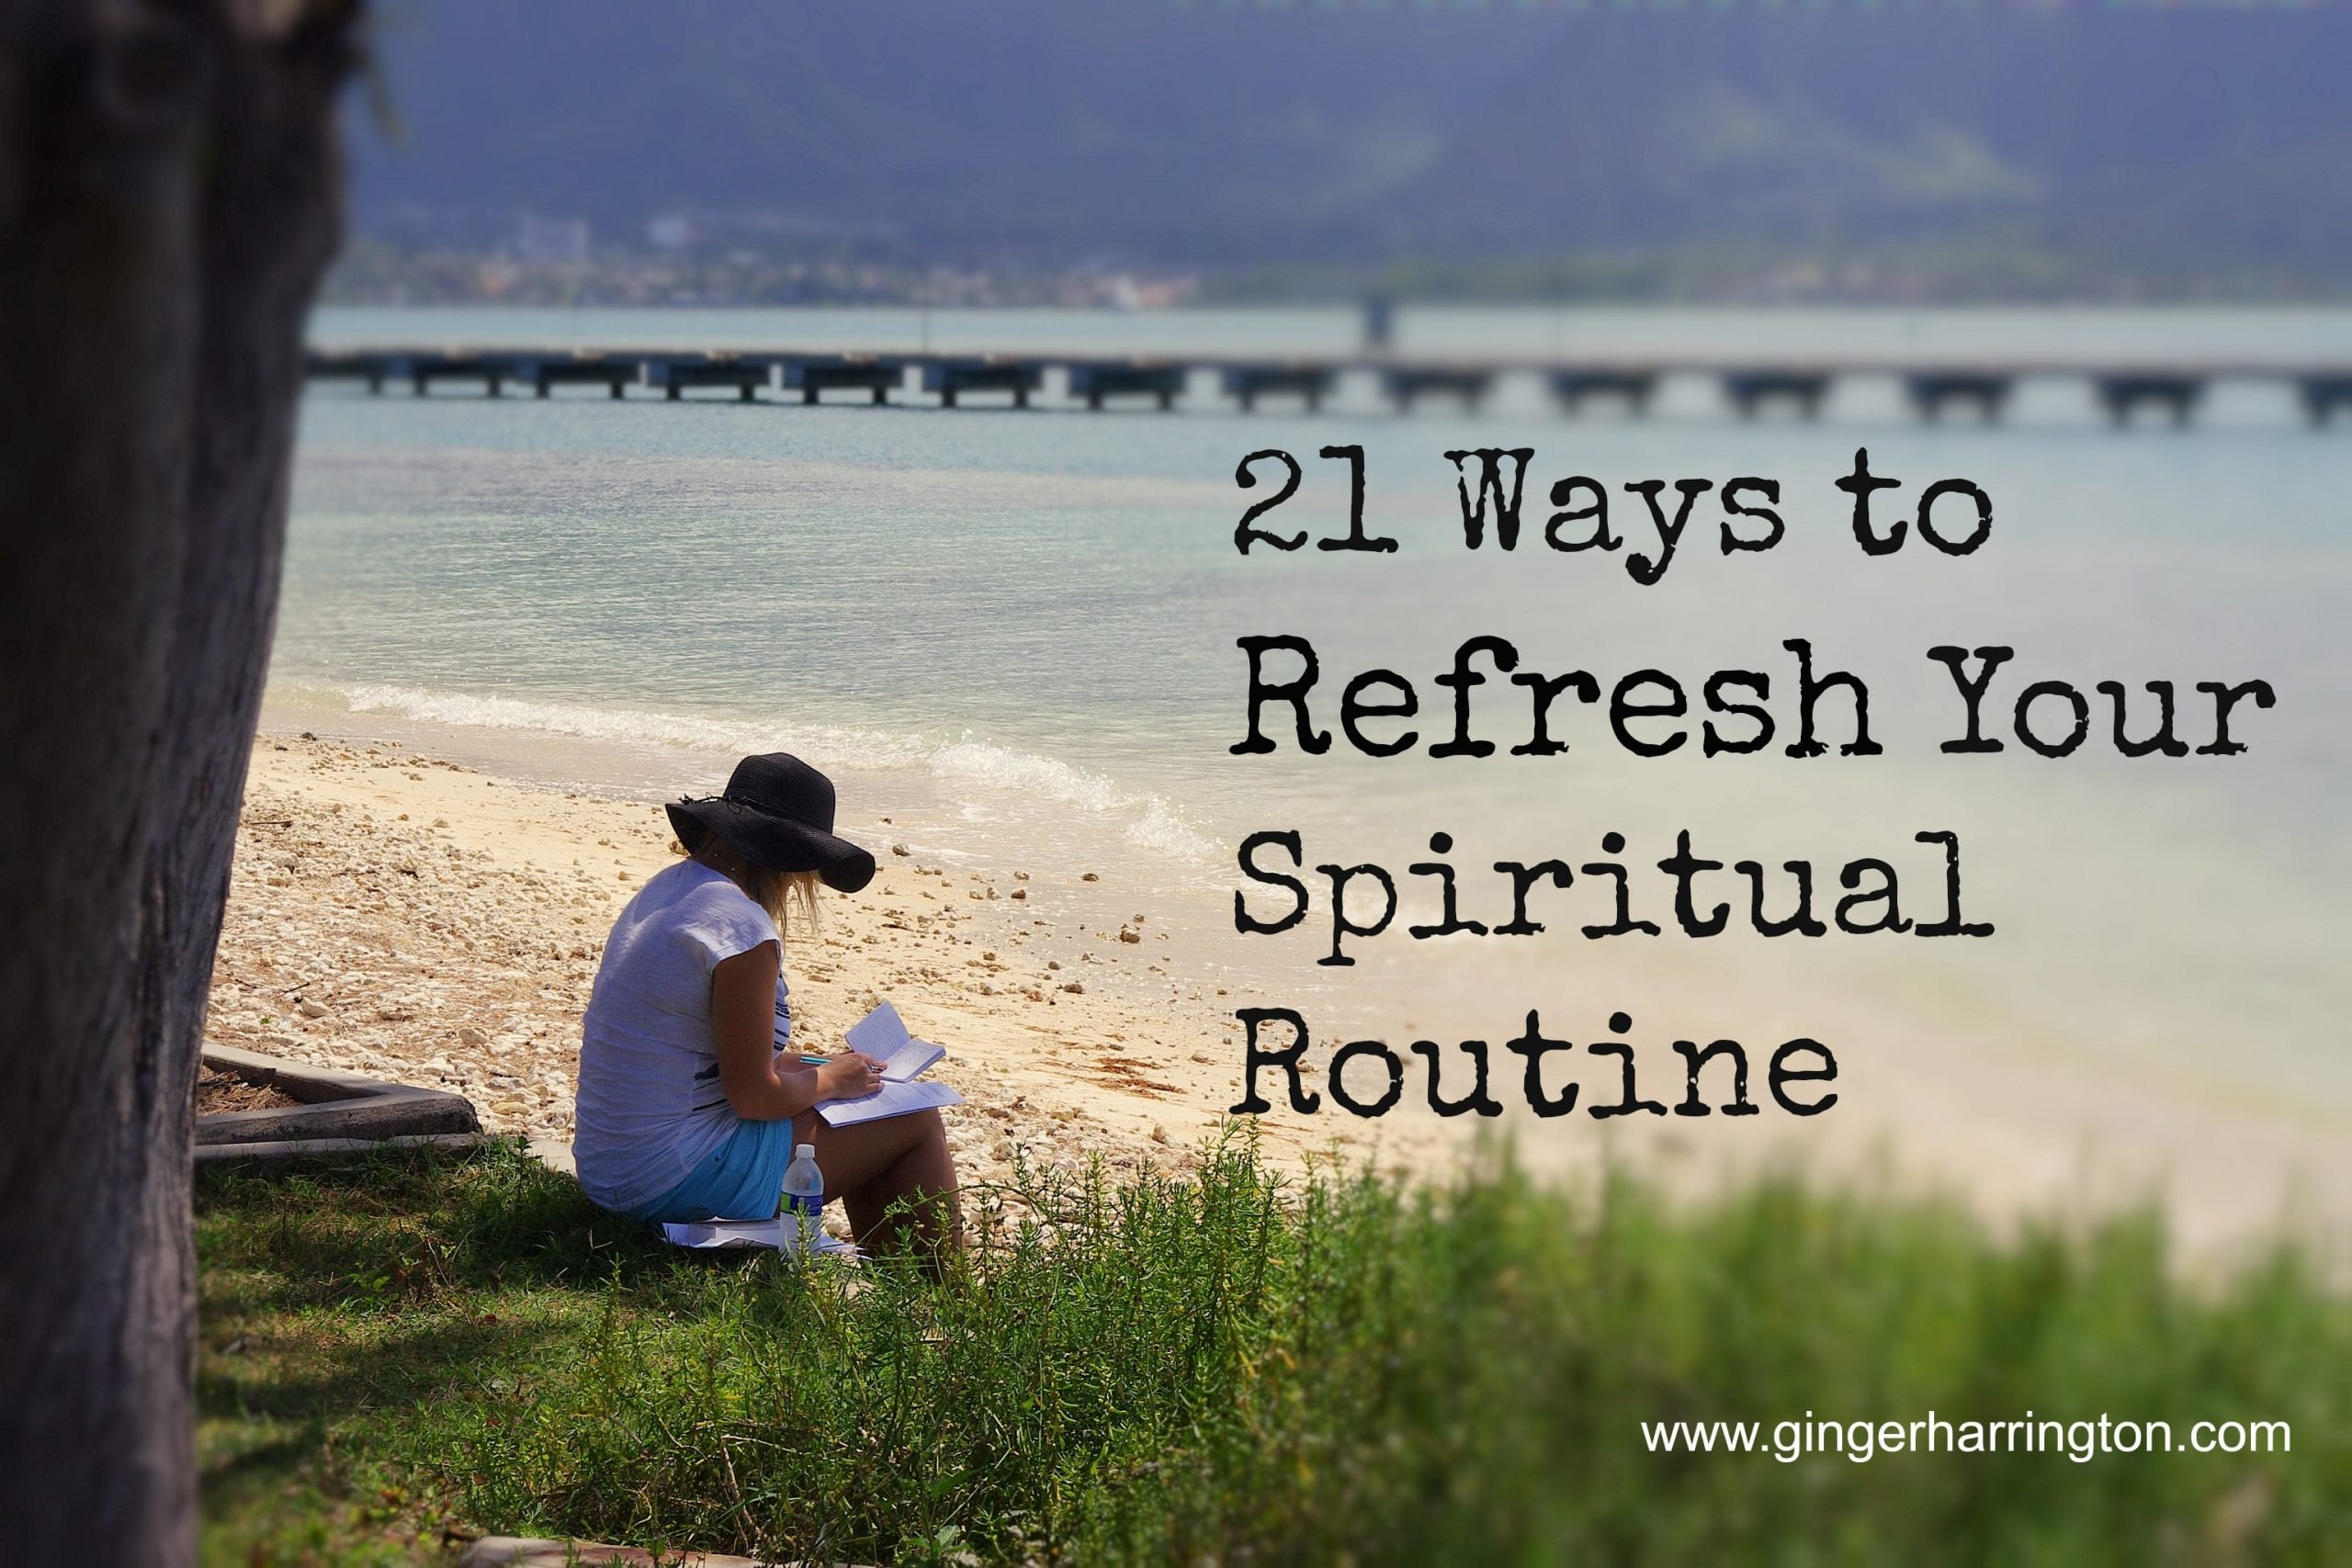 21 Ways to Refresh Your Spiritual Routine